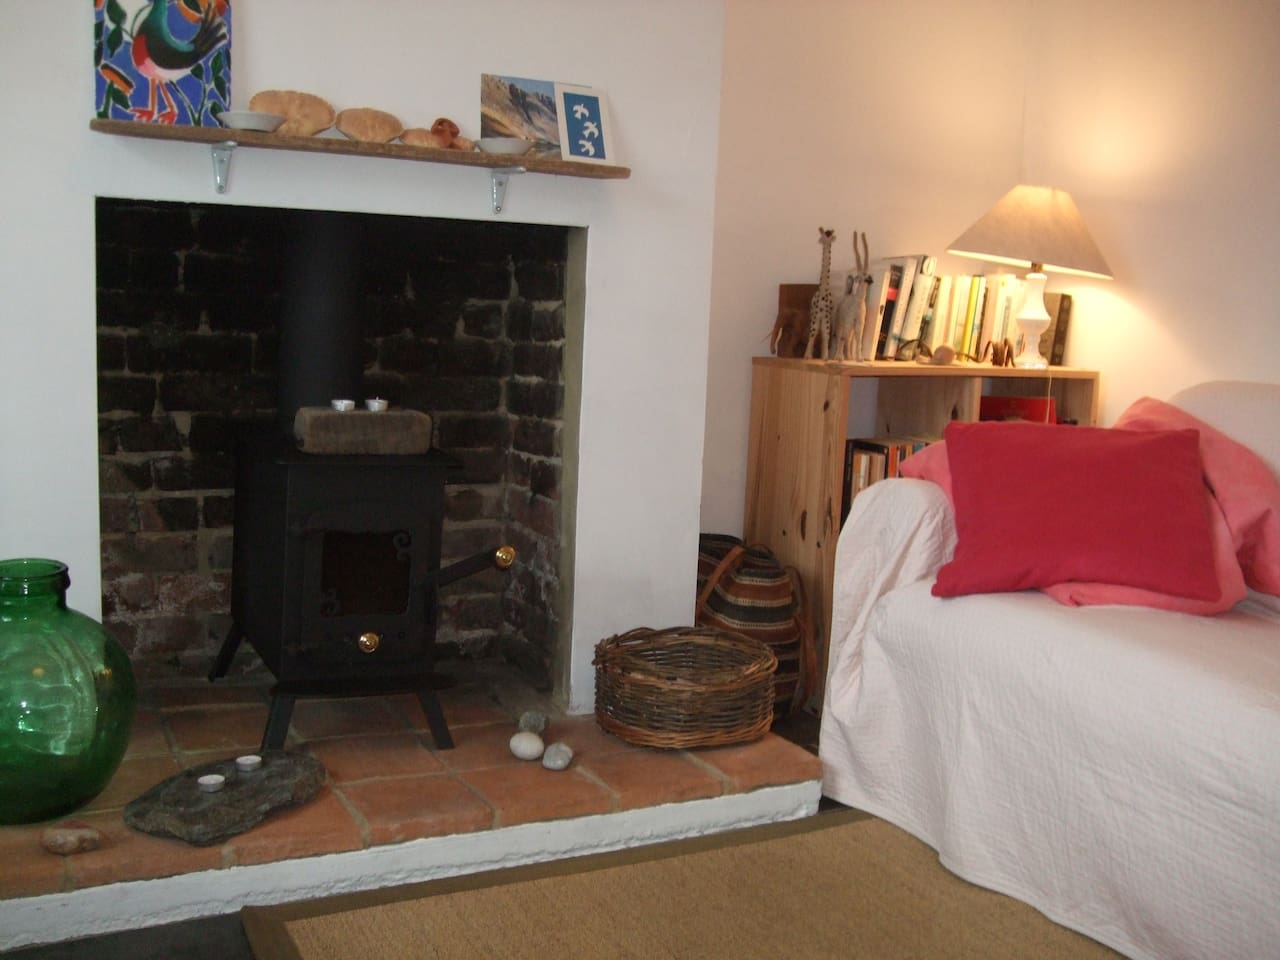 Cosy living room with woodburner. This fisherman's cottage is 3 doors from the beach and harbour. Perfect for summer but you can hunker down by the fire for a lovely winter break too.